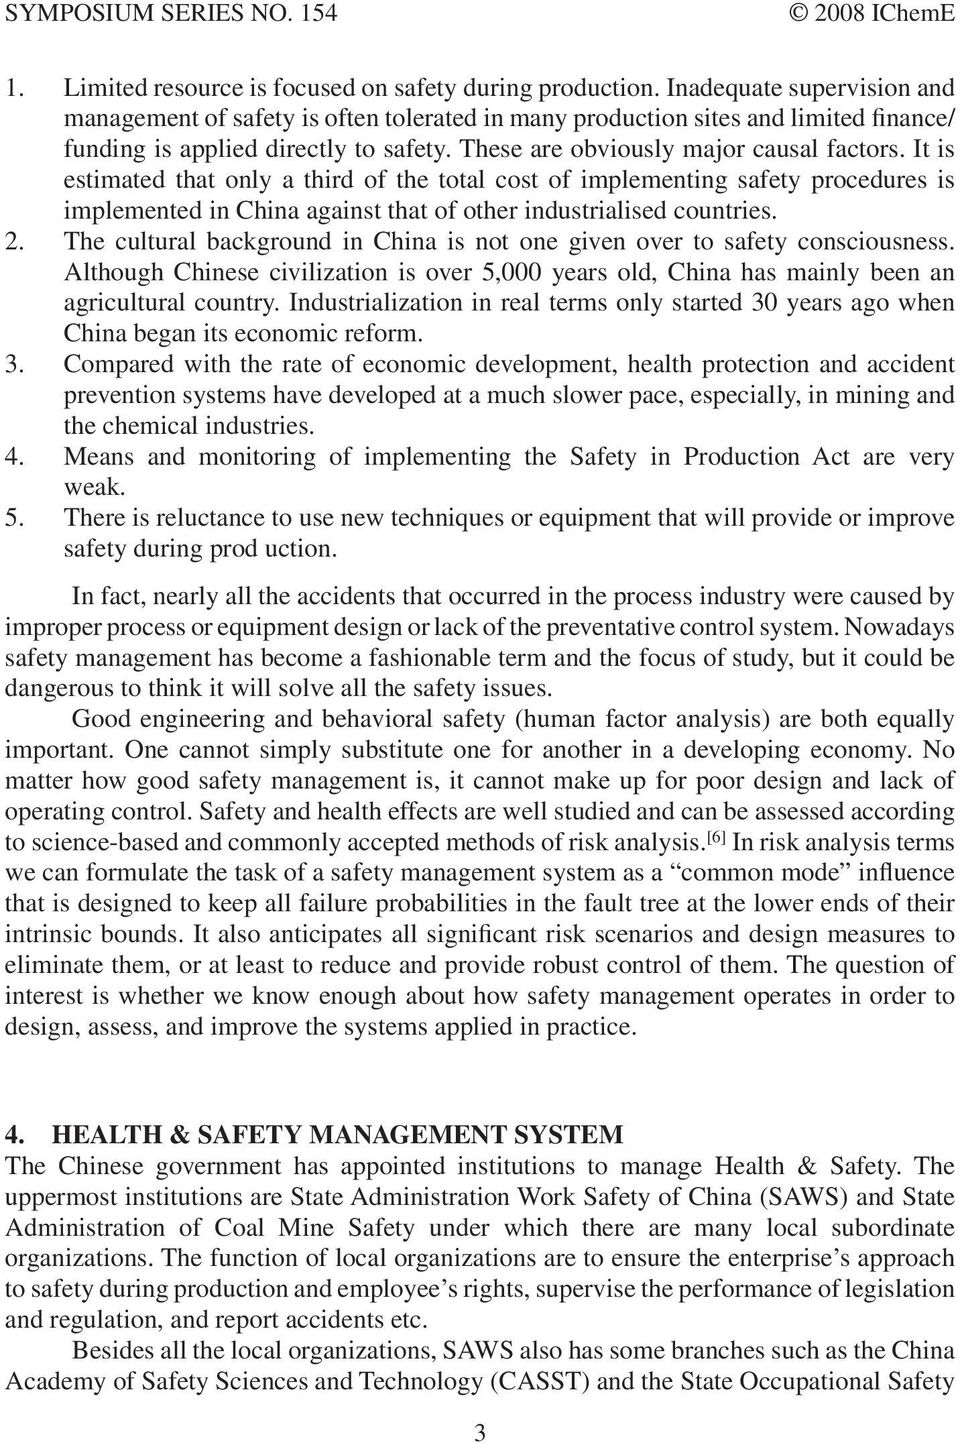 It is estimated that ony a third of the tota cost of impementing safety procedures is impemented in China against that of other industriaised countries. 2.